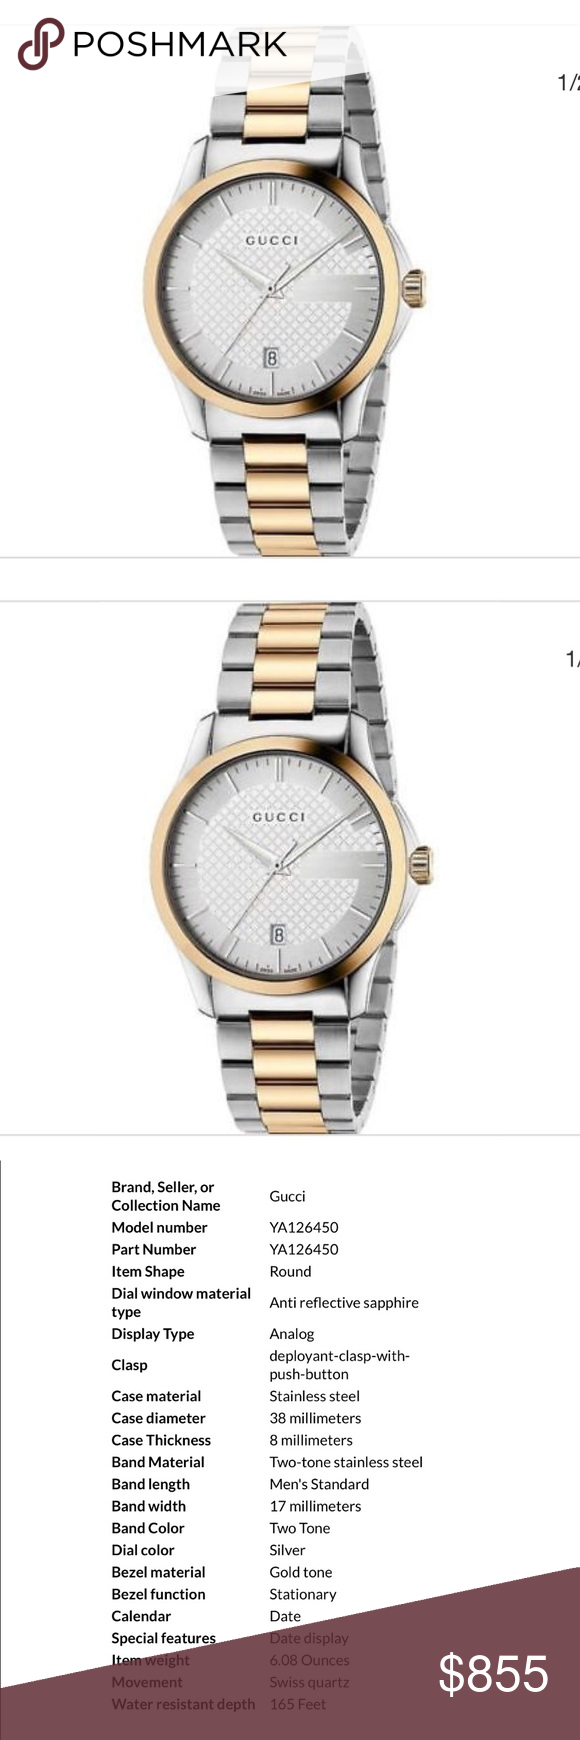 8d5ab30eeea Nwt and box Authentic Gucci Gucci unisex YA126450 Timeless Two Tone  Stainless Steel Swiss Quartz Watch